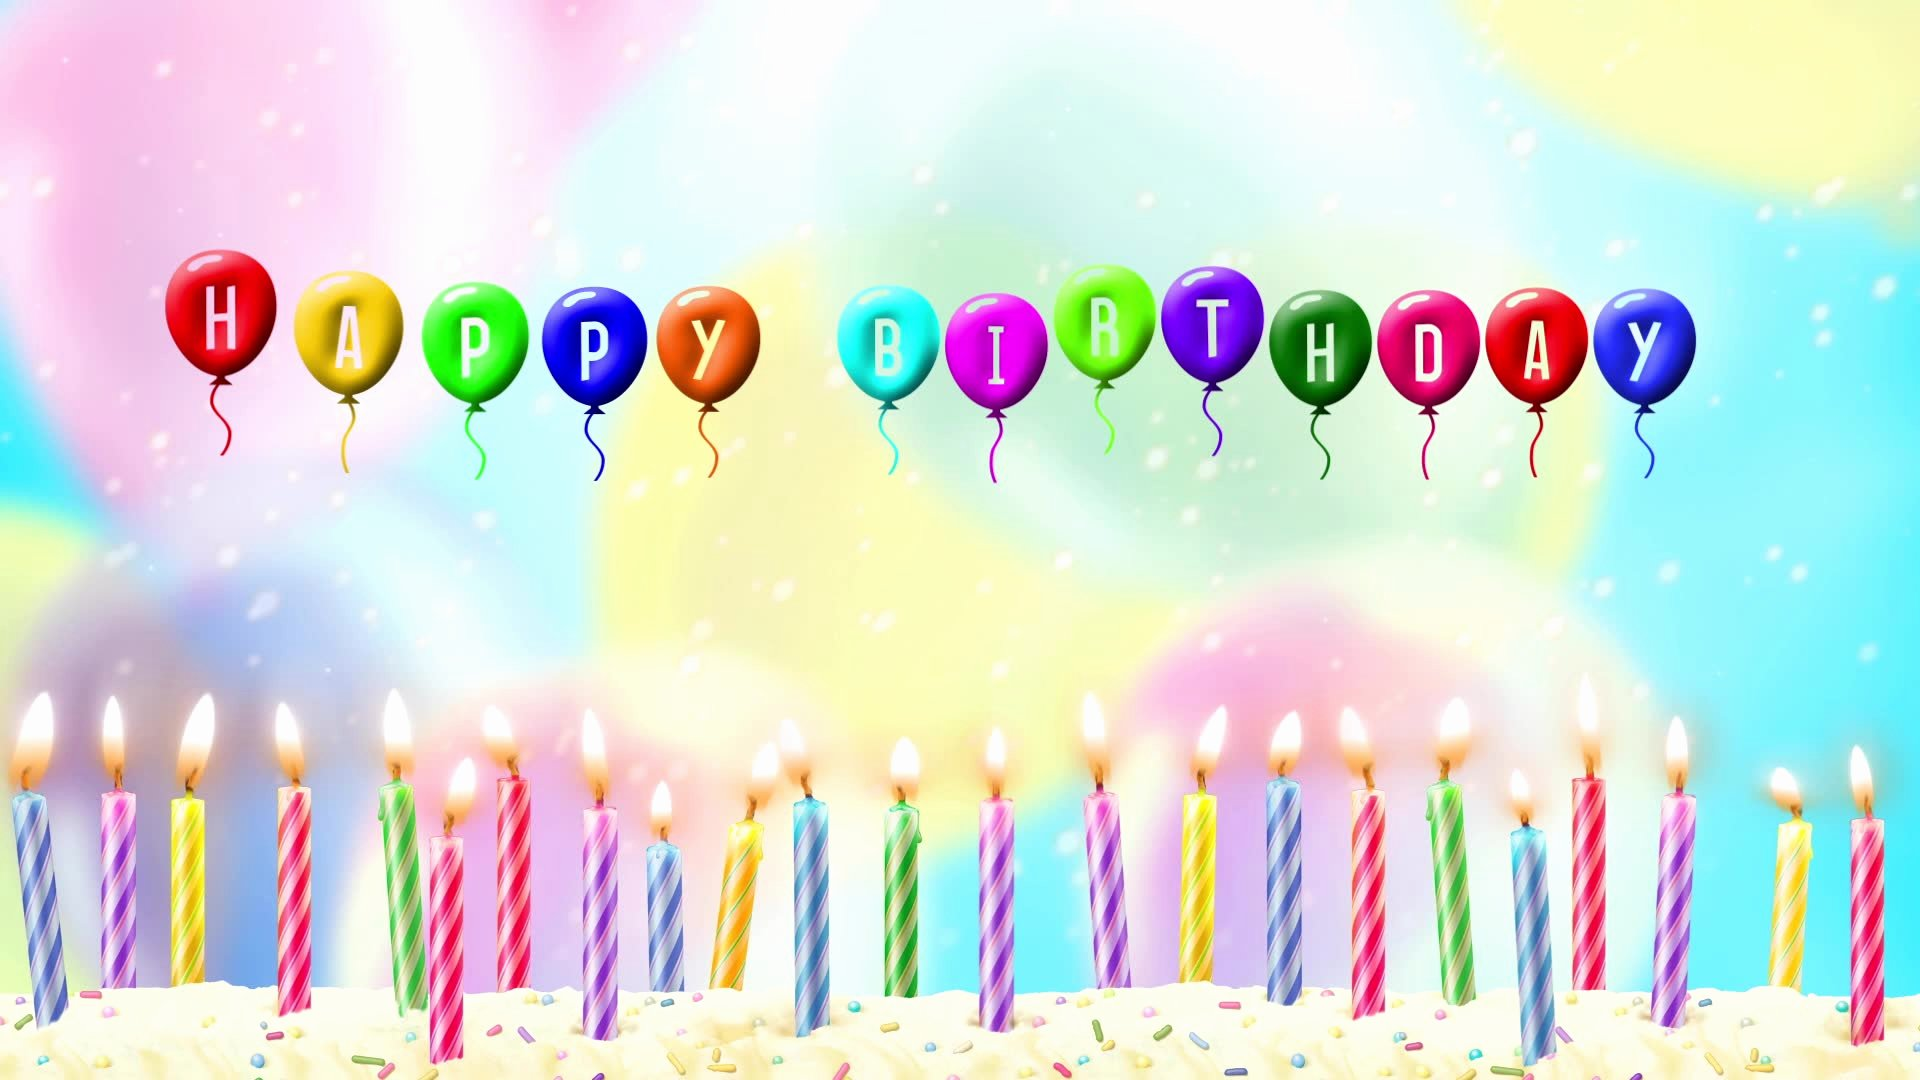 Free Downloads Happy Birthday Images Elegant Happy Birthday Backgrounds